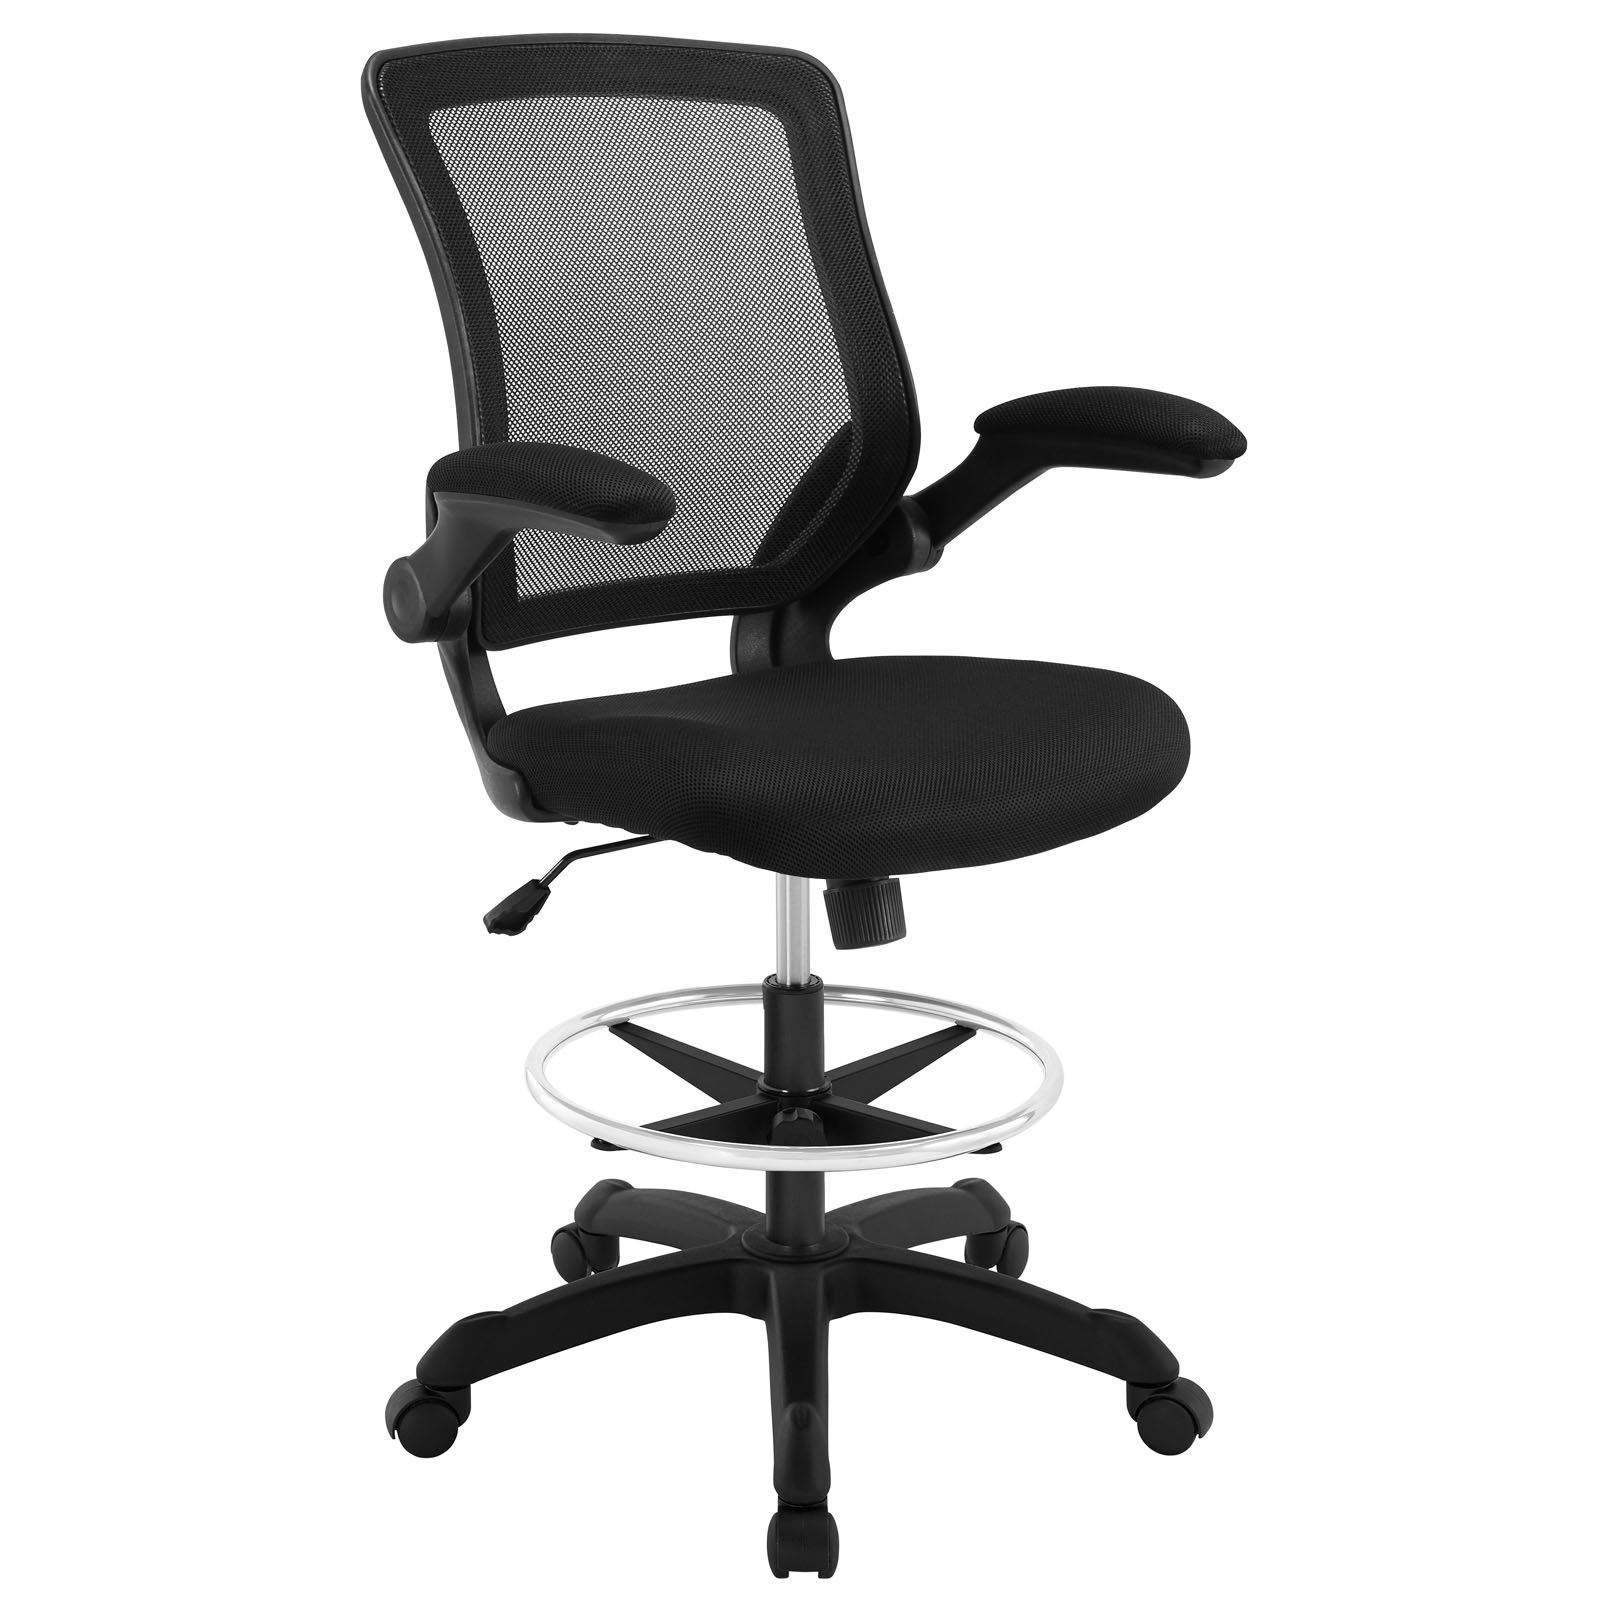 Modway Veer Drafting Chair In Black - Reception Desk Chair - Tall Office Chair For Adjustable Standing Desks - Flip-Up Arm Drafting Table Chair... by Modway